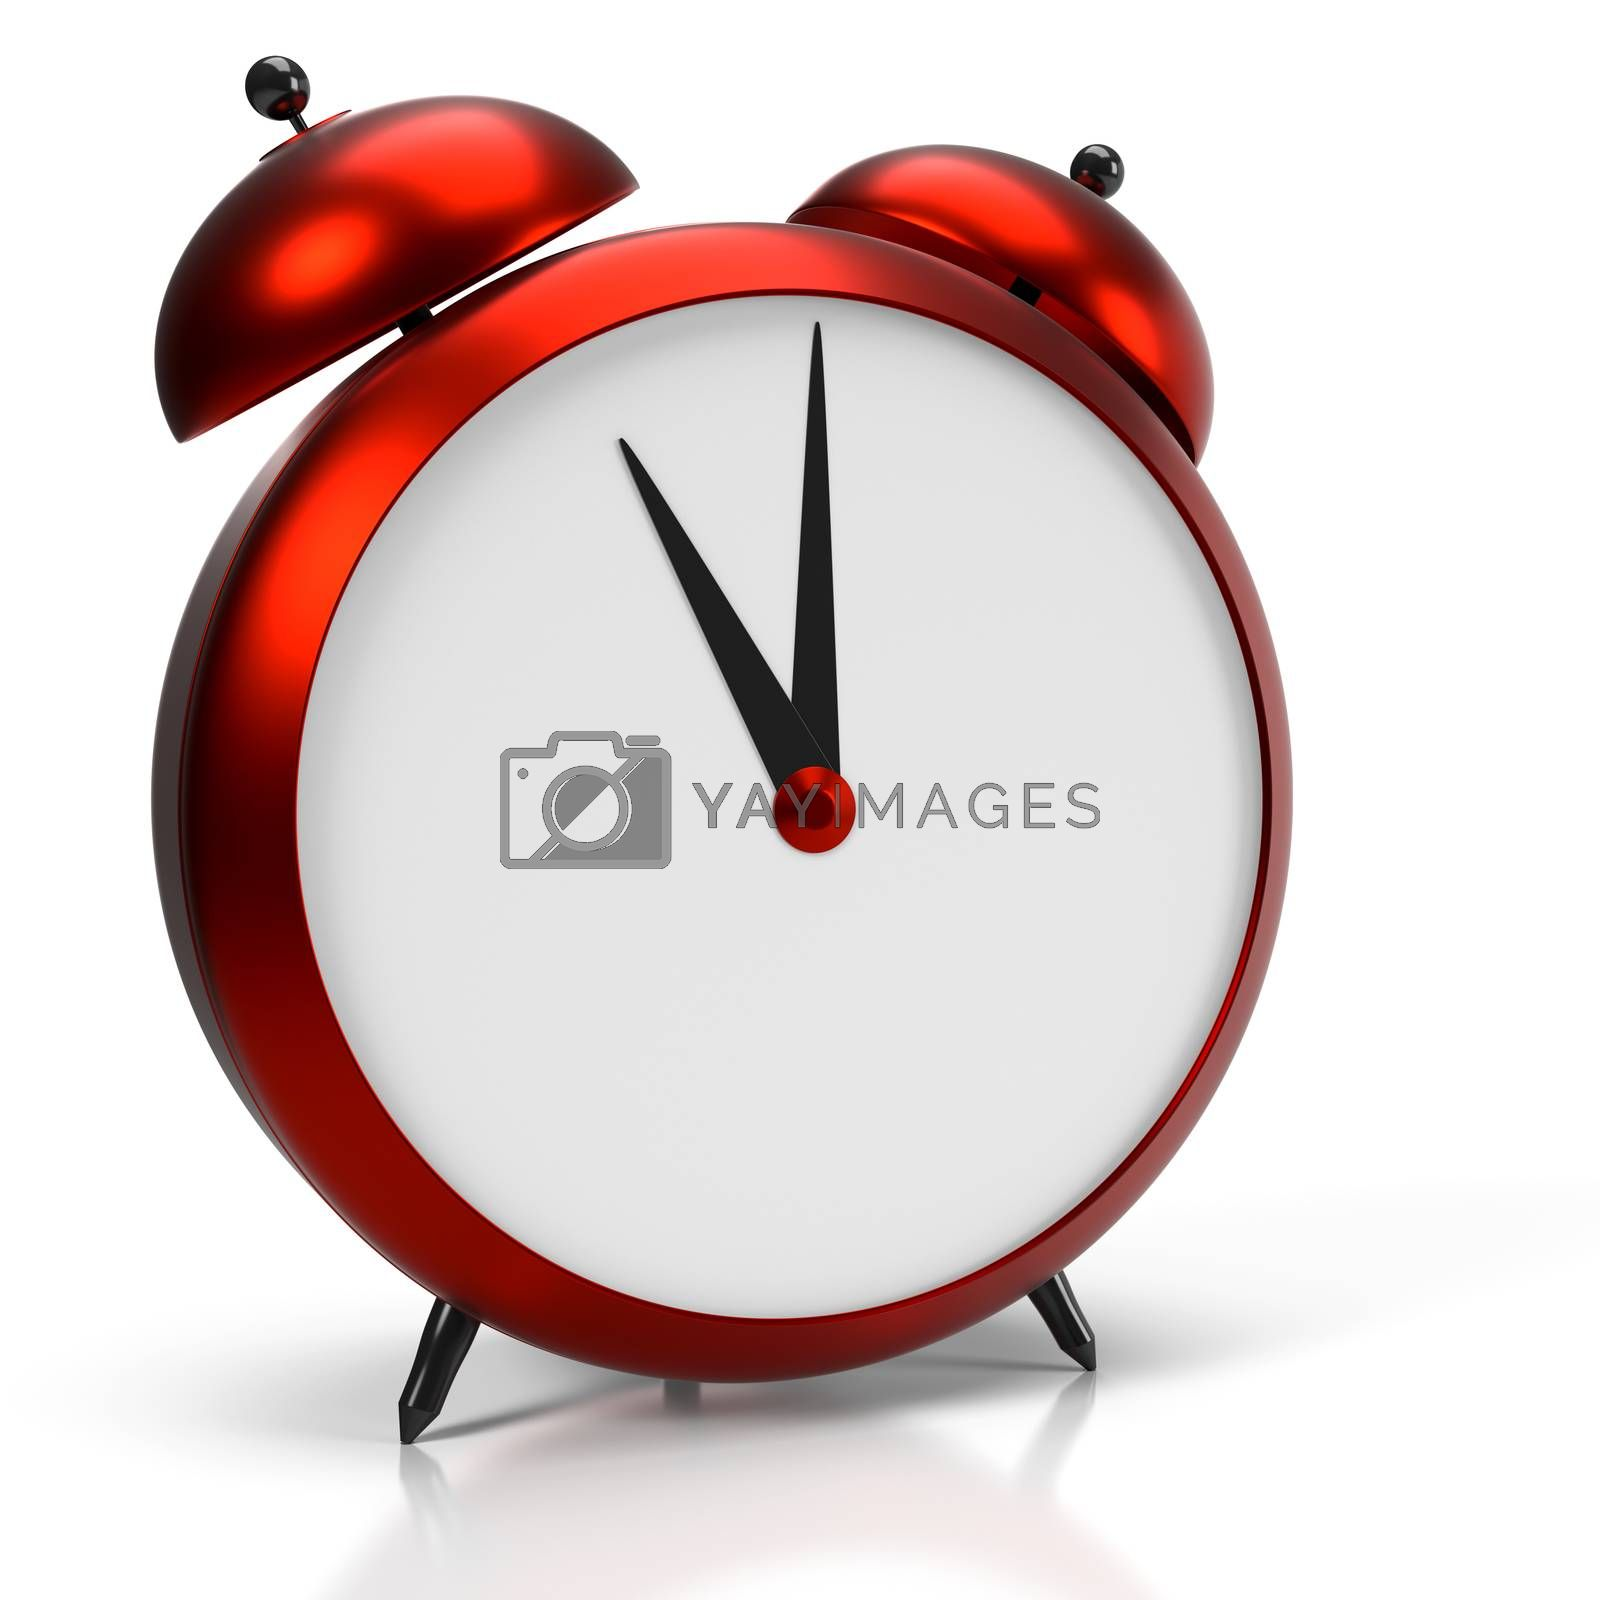 Alarm clock on white background. 11 O'Clock, am or pm. 3D rendering